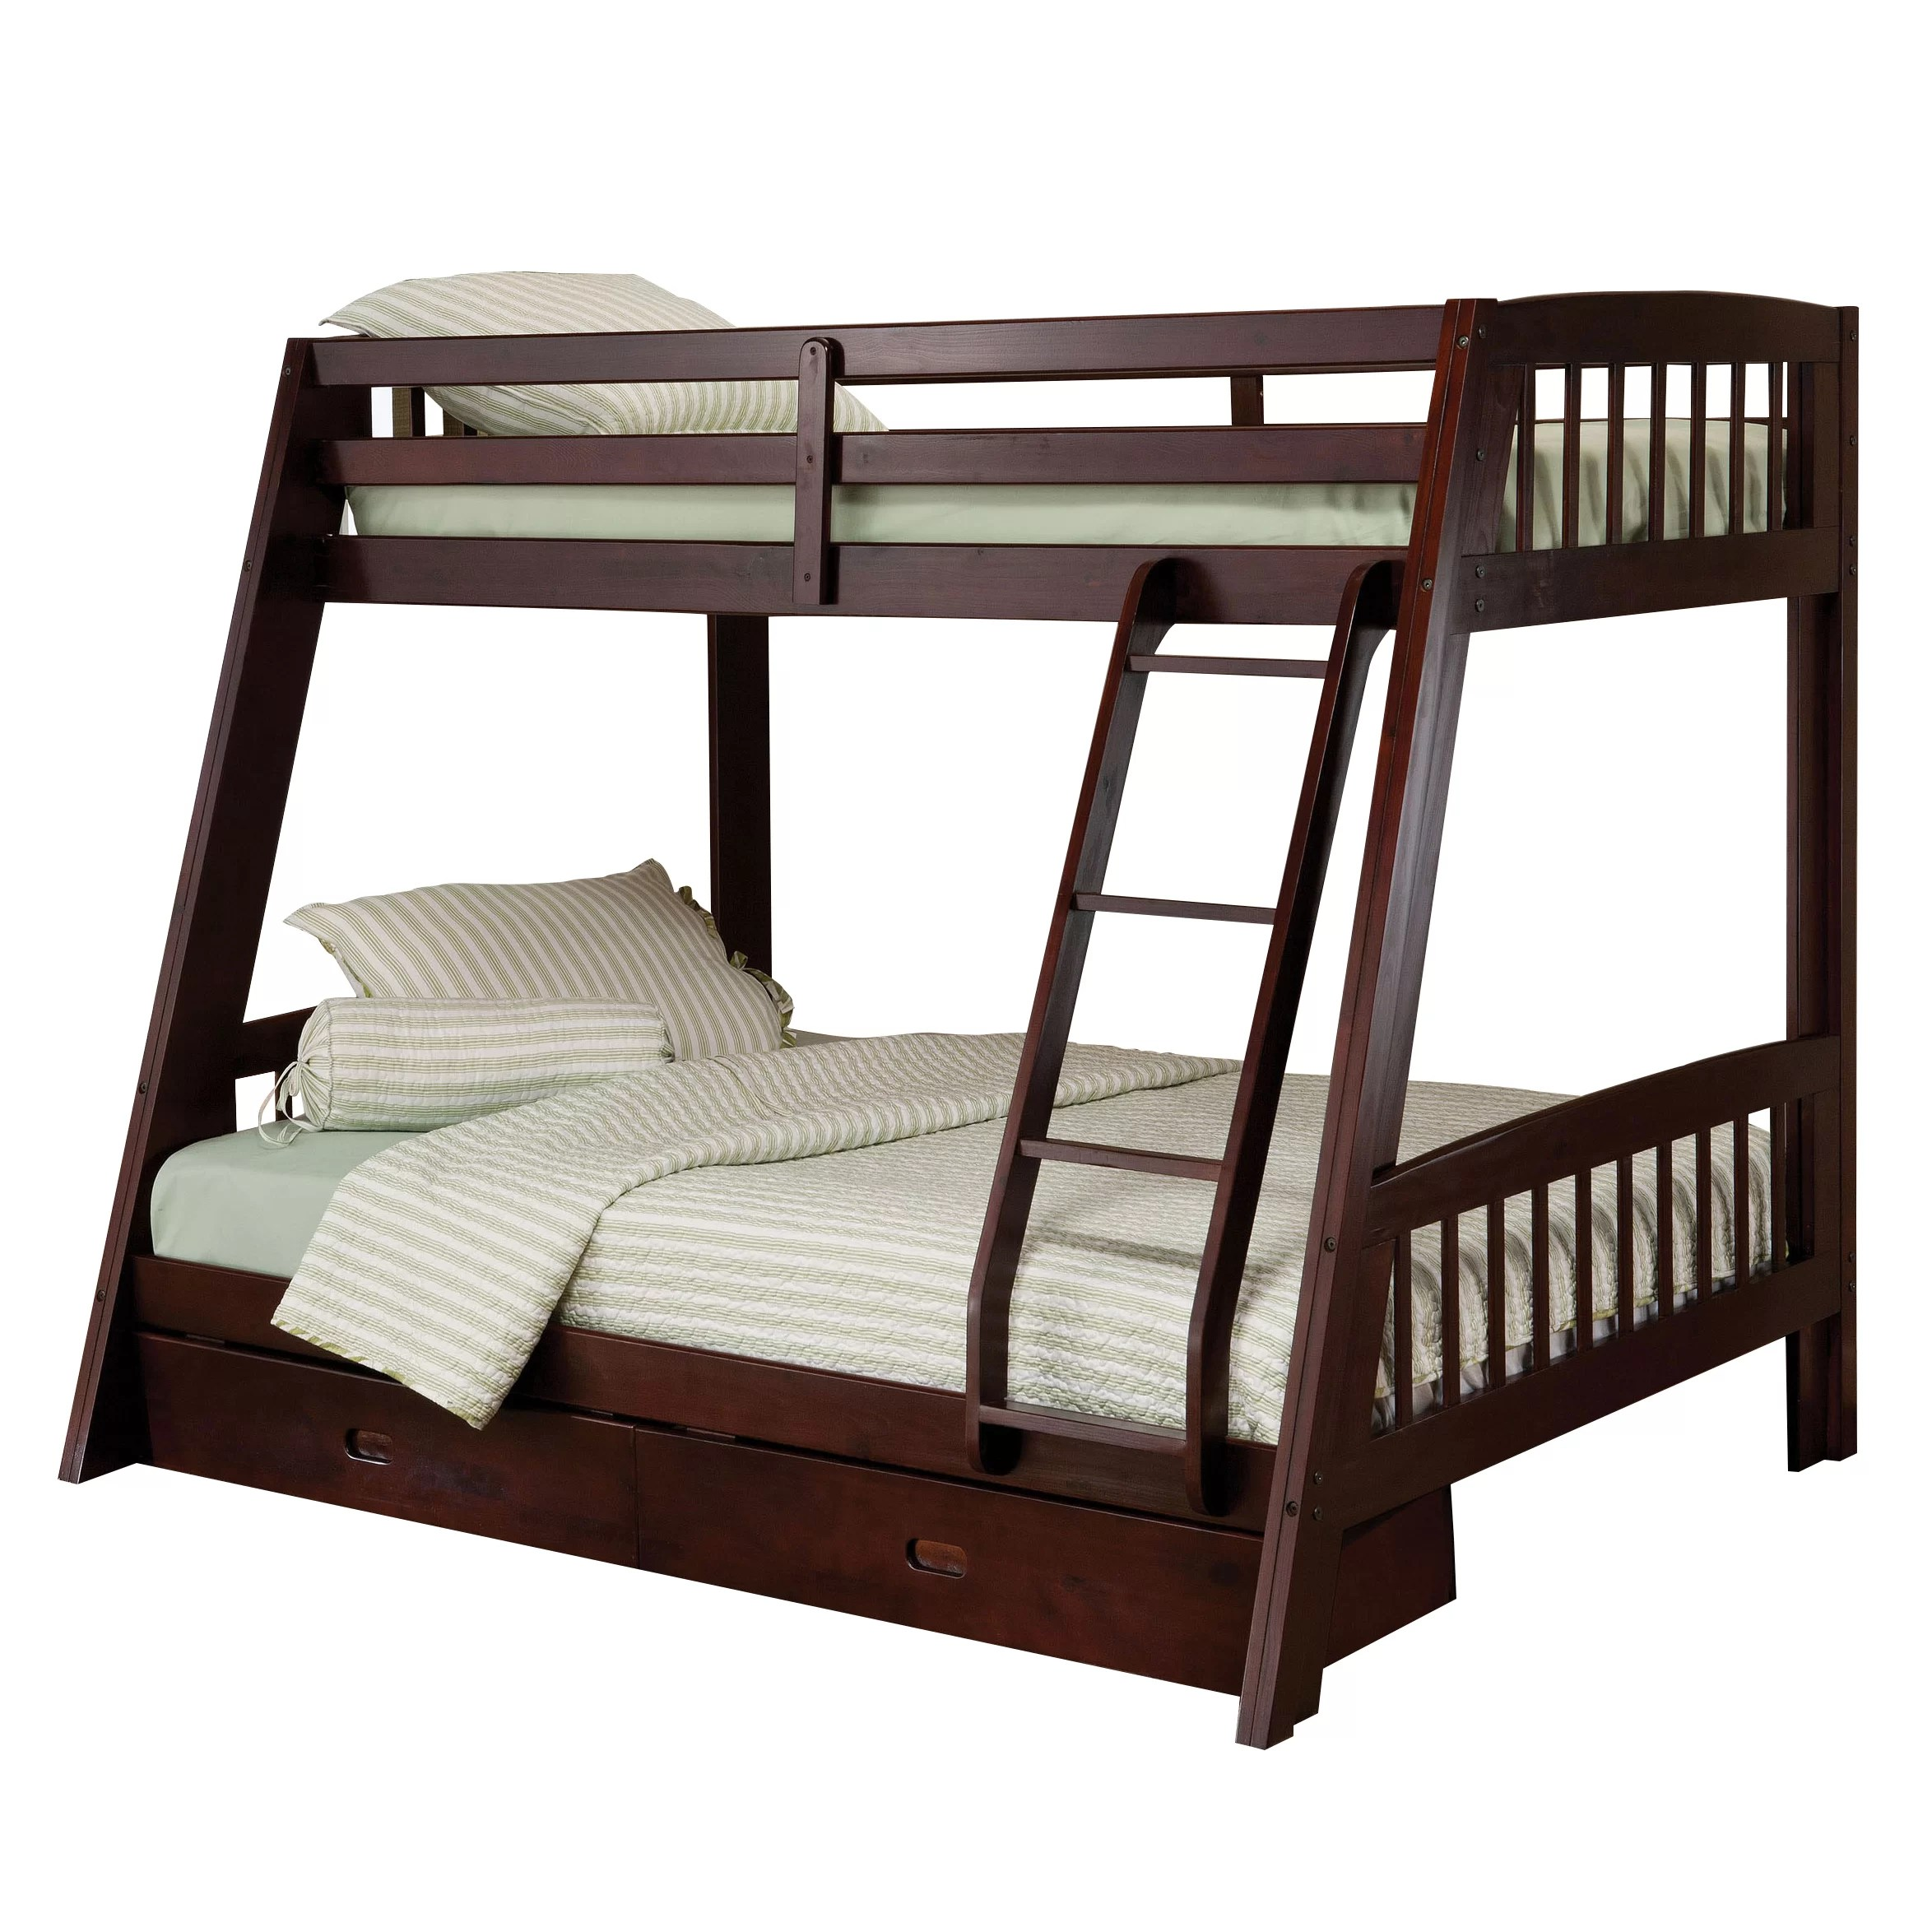 loft bed with chair futon cosco kitchen stool hillsdale rockdale twin over full bunk storage